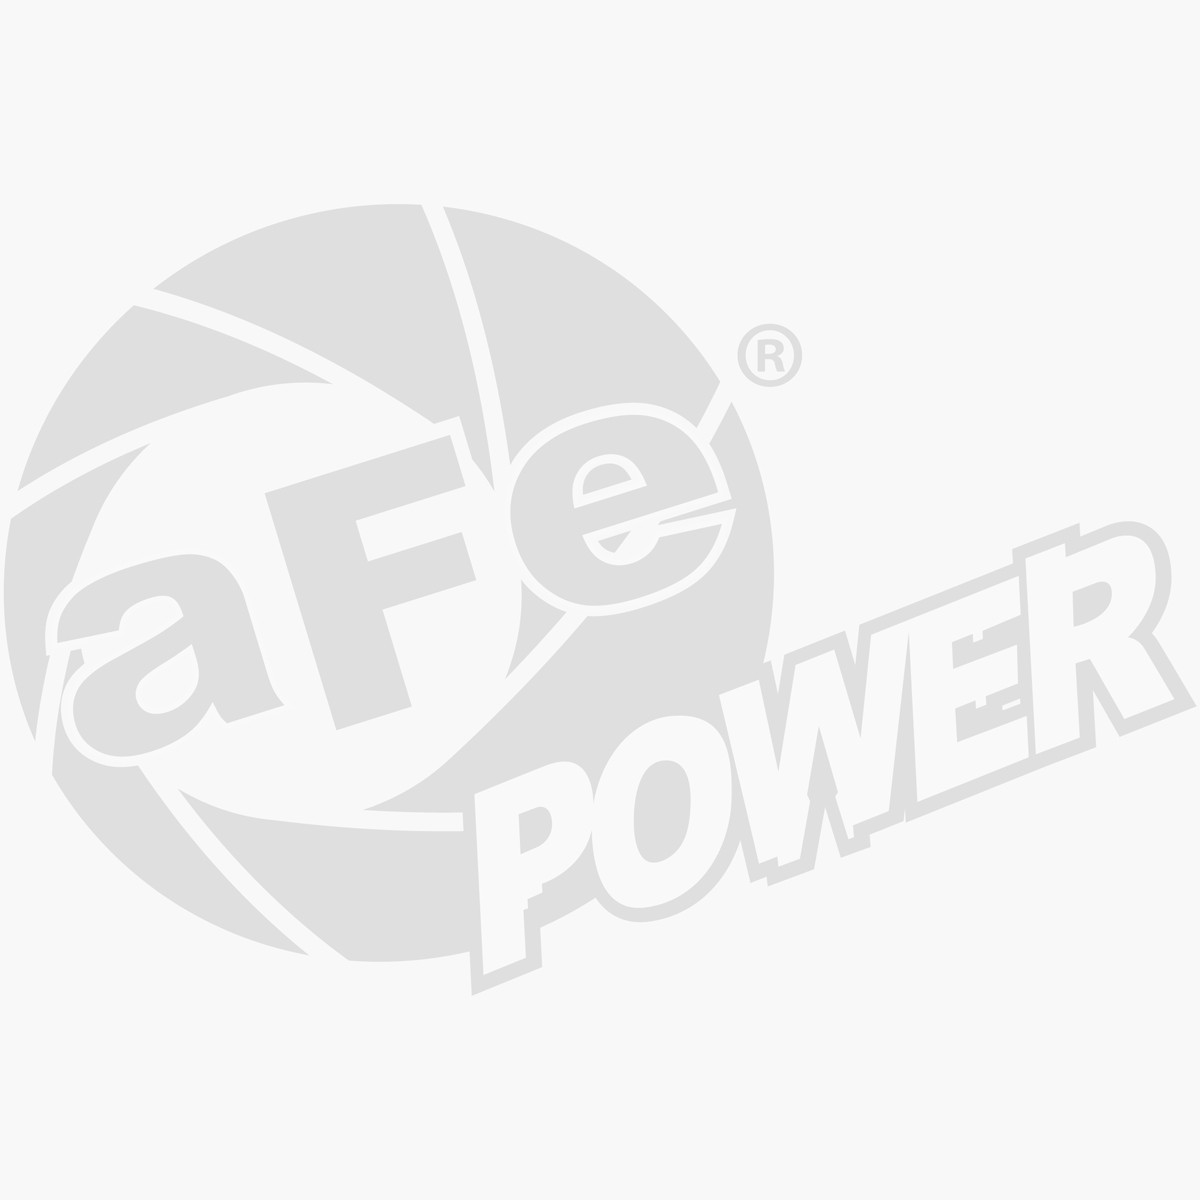 aFe POWER 73-10184 Magnum FLOW Pro GUARD7 Air Filter